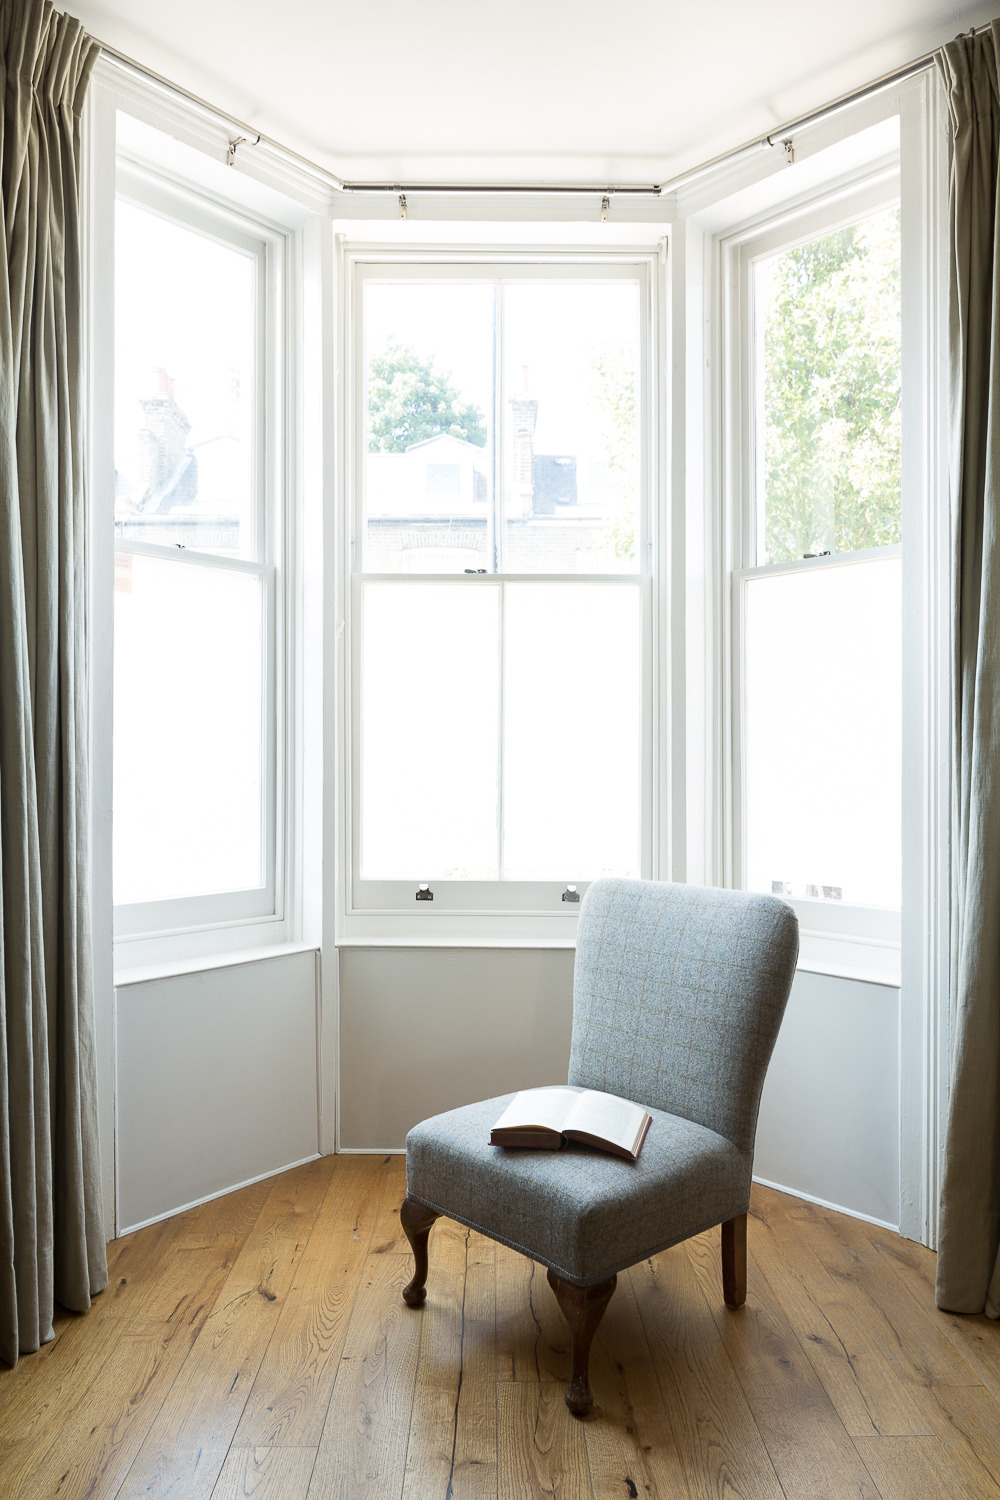 Chris kept the original sash windows in this bay but replaced the single glazing with super-thin double glazing, and the walls below have internal insulation added to them. It all adds up to a cozy, draught-free place to read a book...